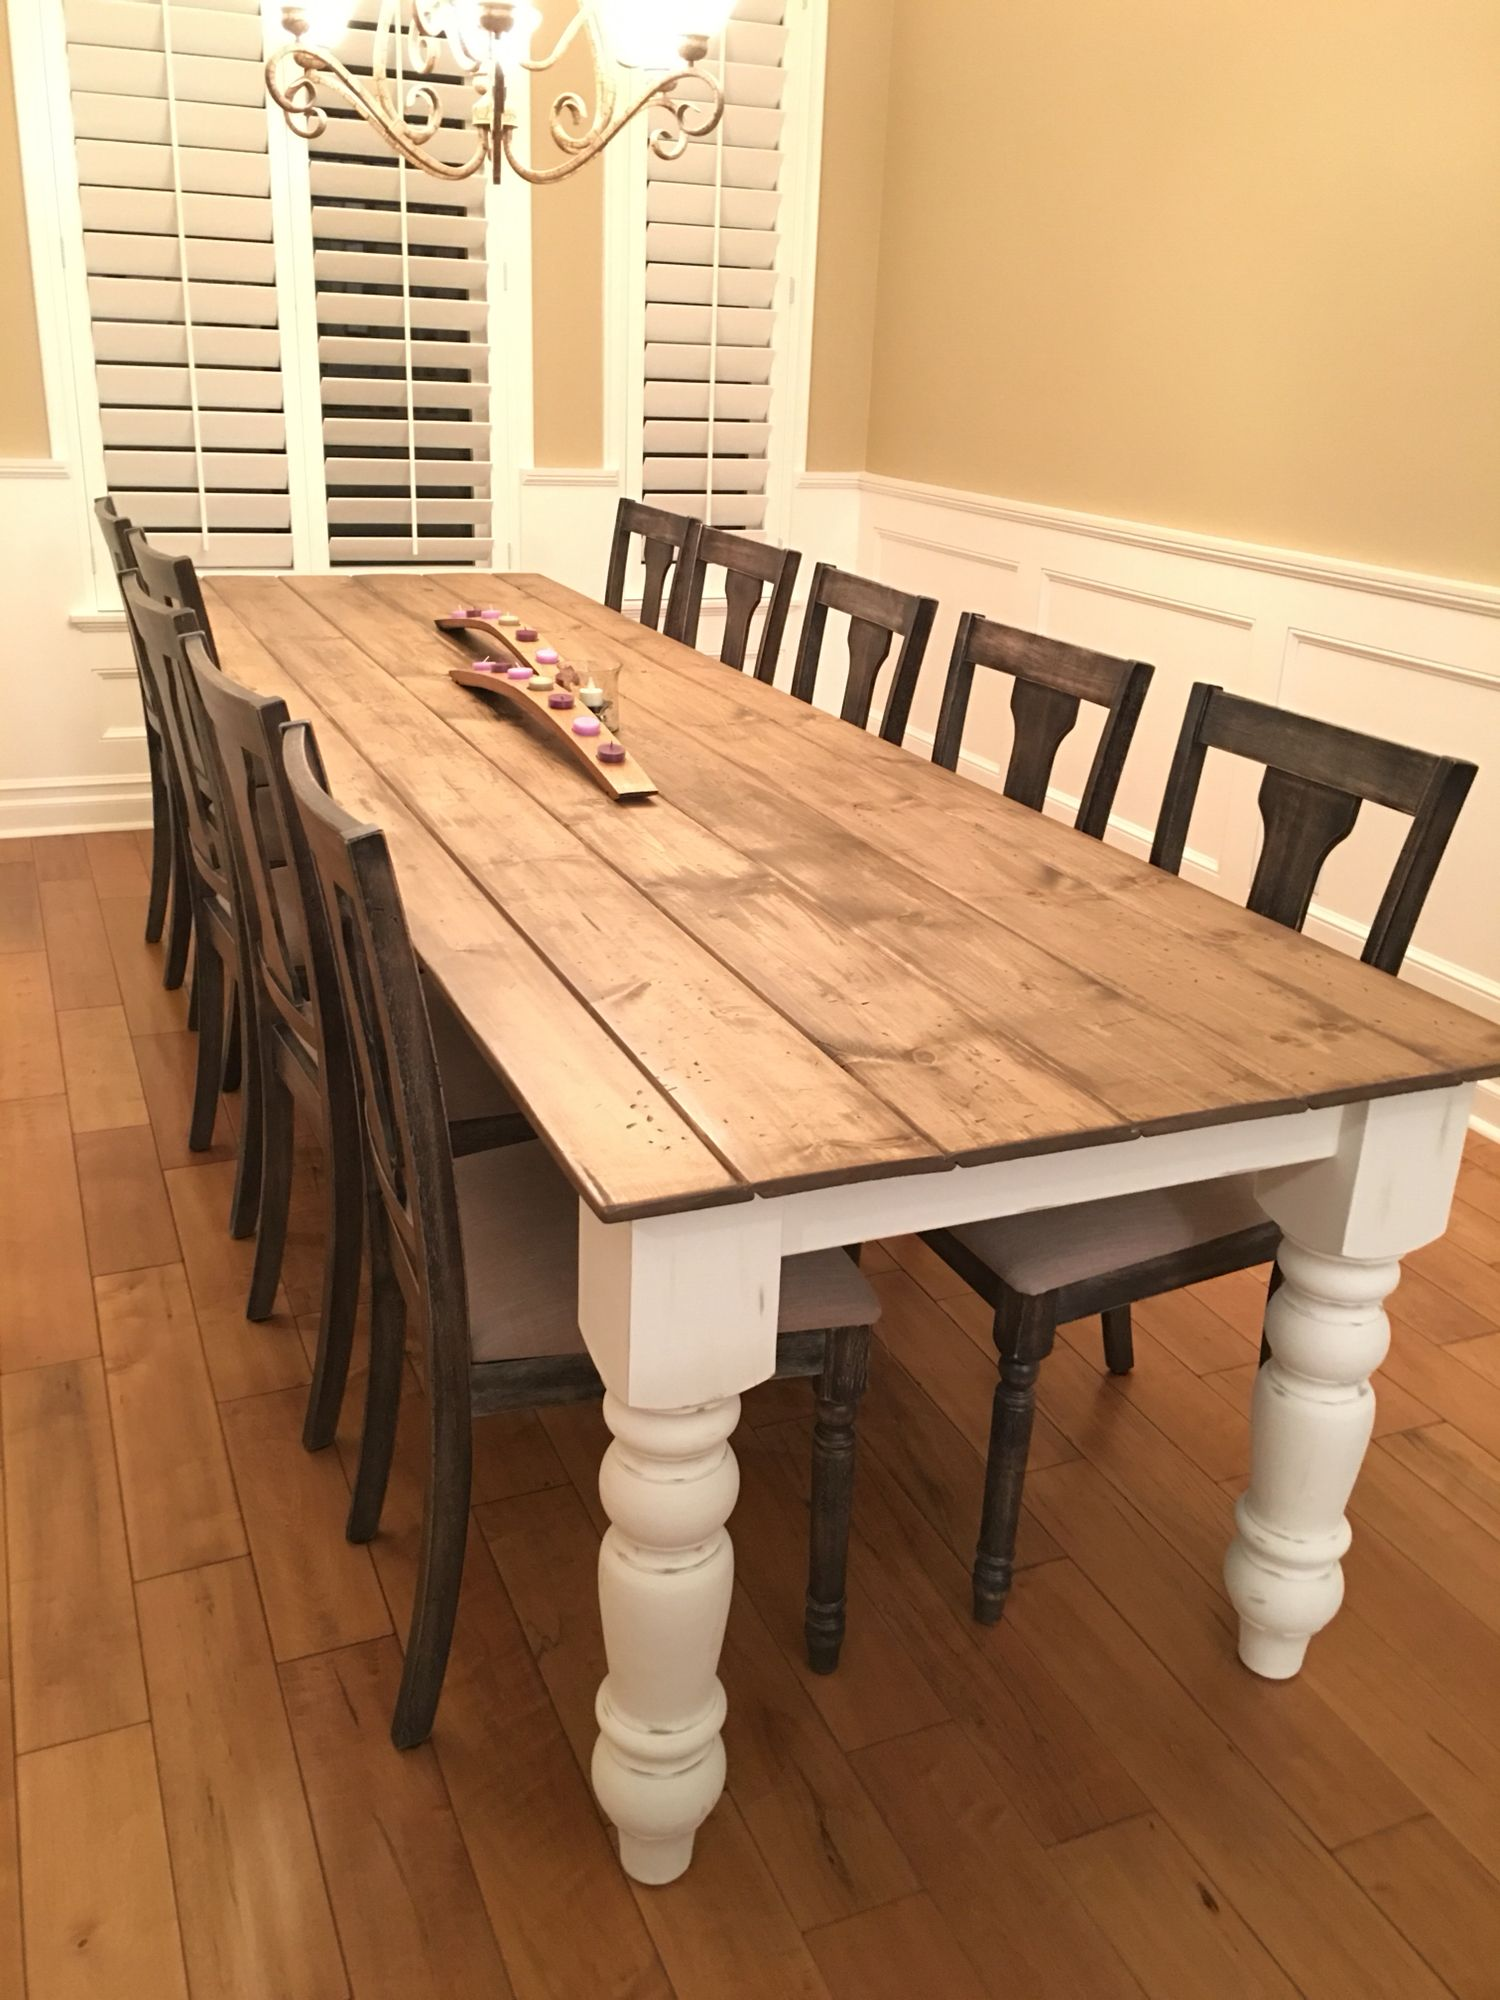 DIY FARMHOUSE TABLE. My husband made my 10 foot 8 inch